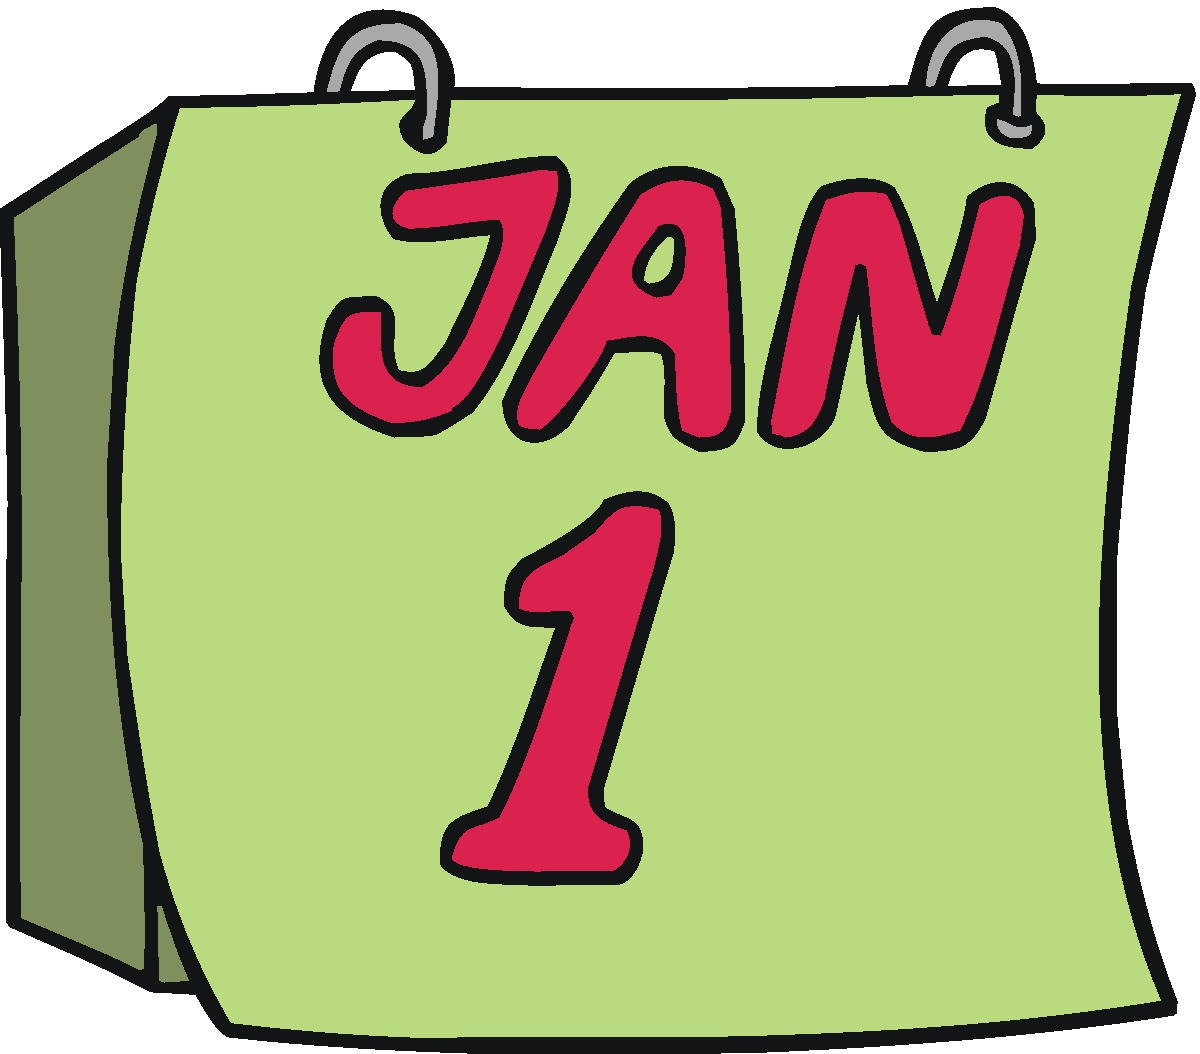 Monthly Announcements Clip Art